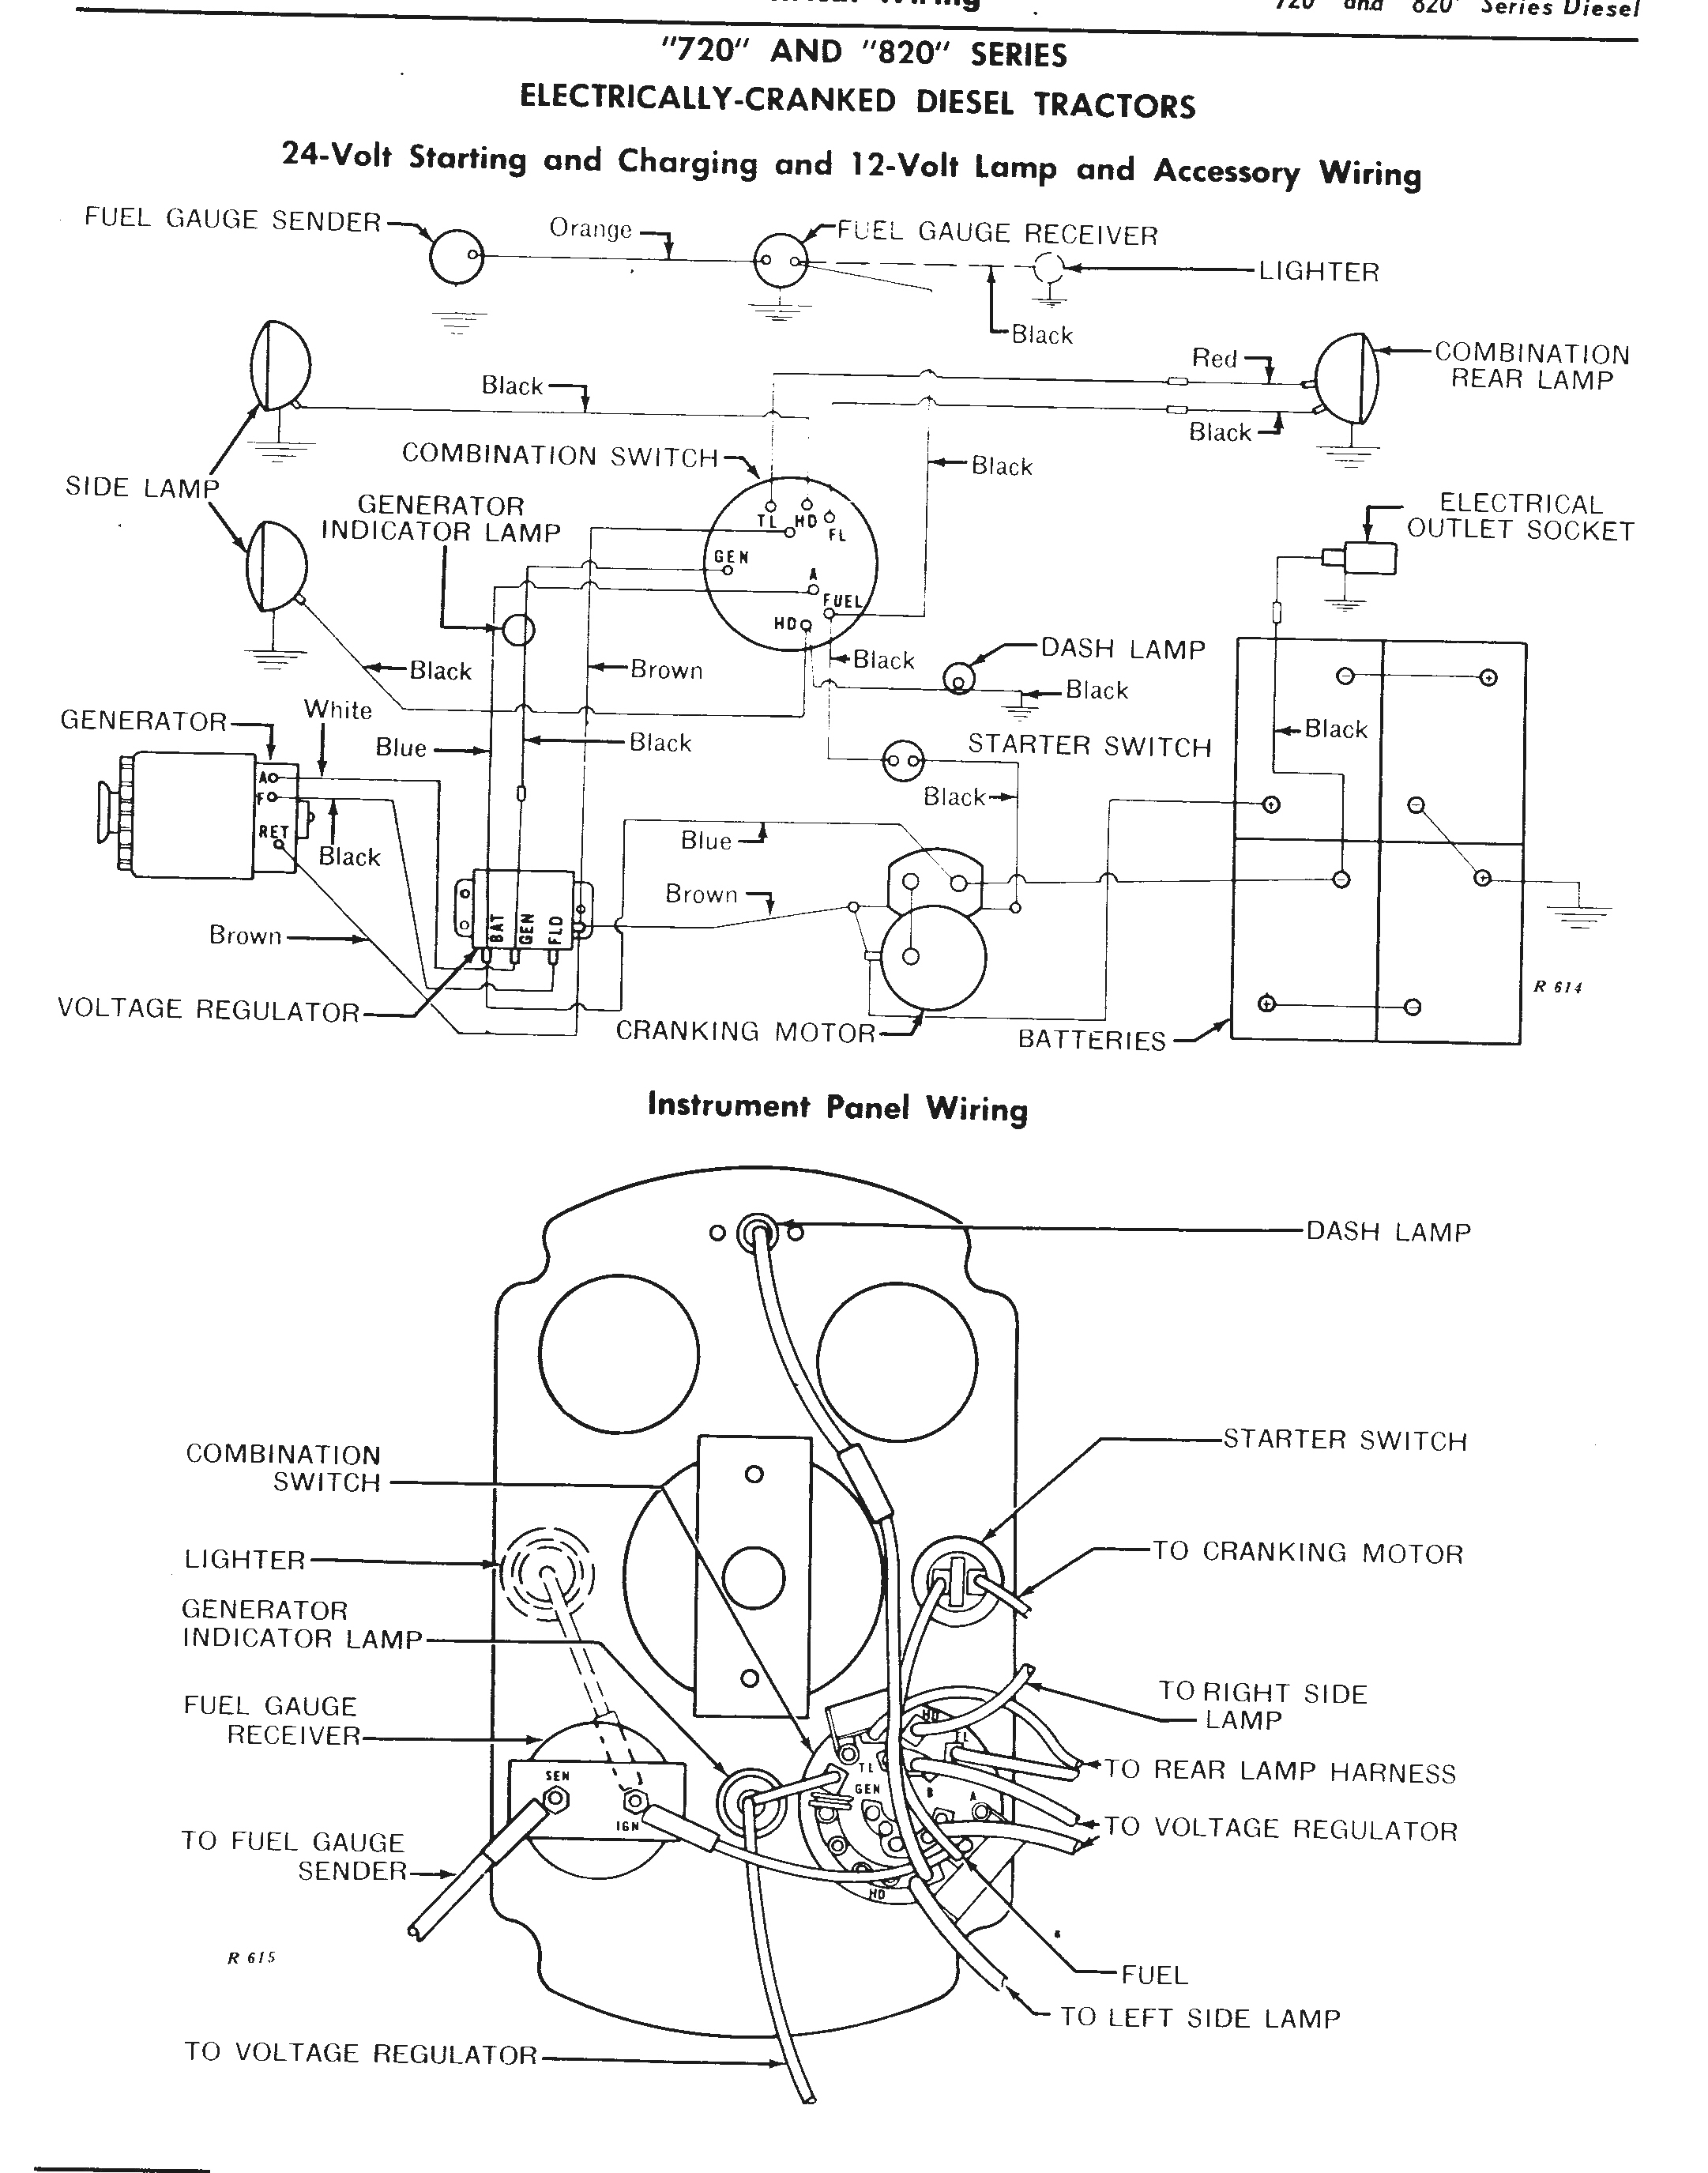 The John Deere 24 Volt Electrical System Explained 4 Post Starter Solenoid Wiring Diagram Free Picture